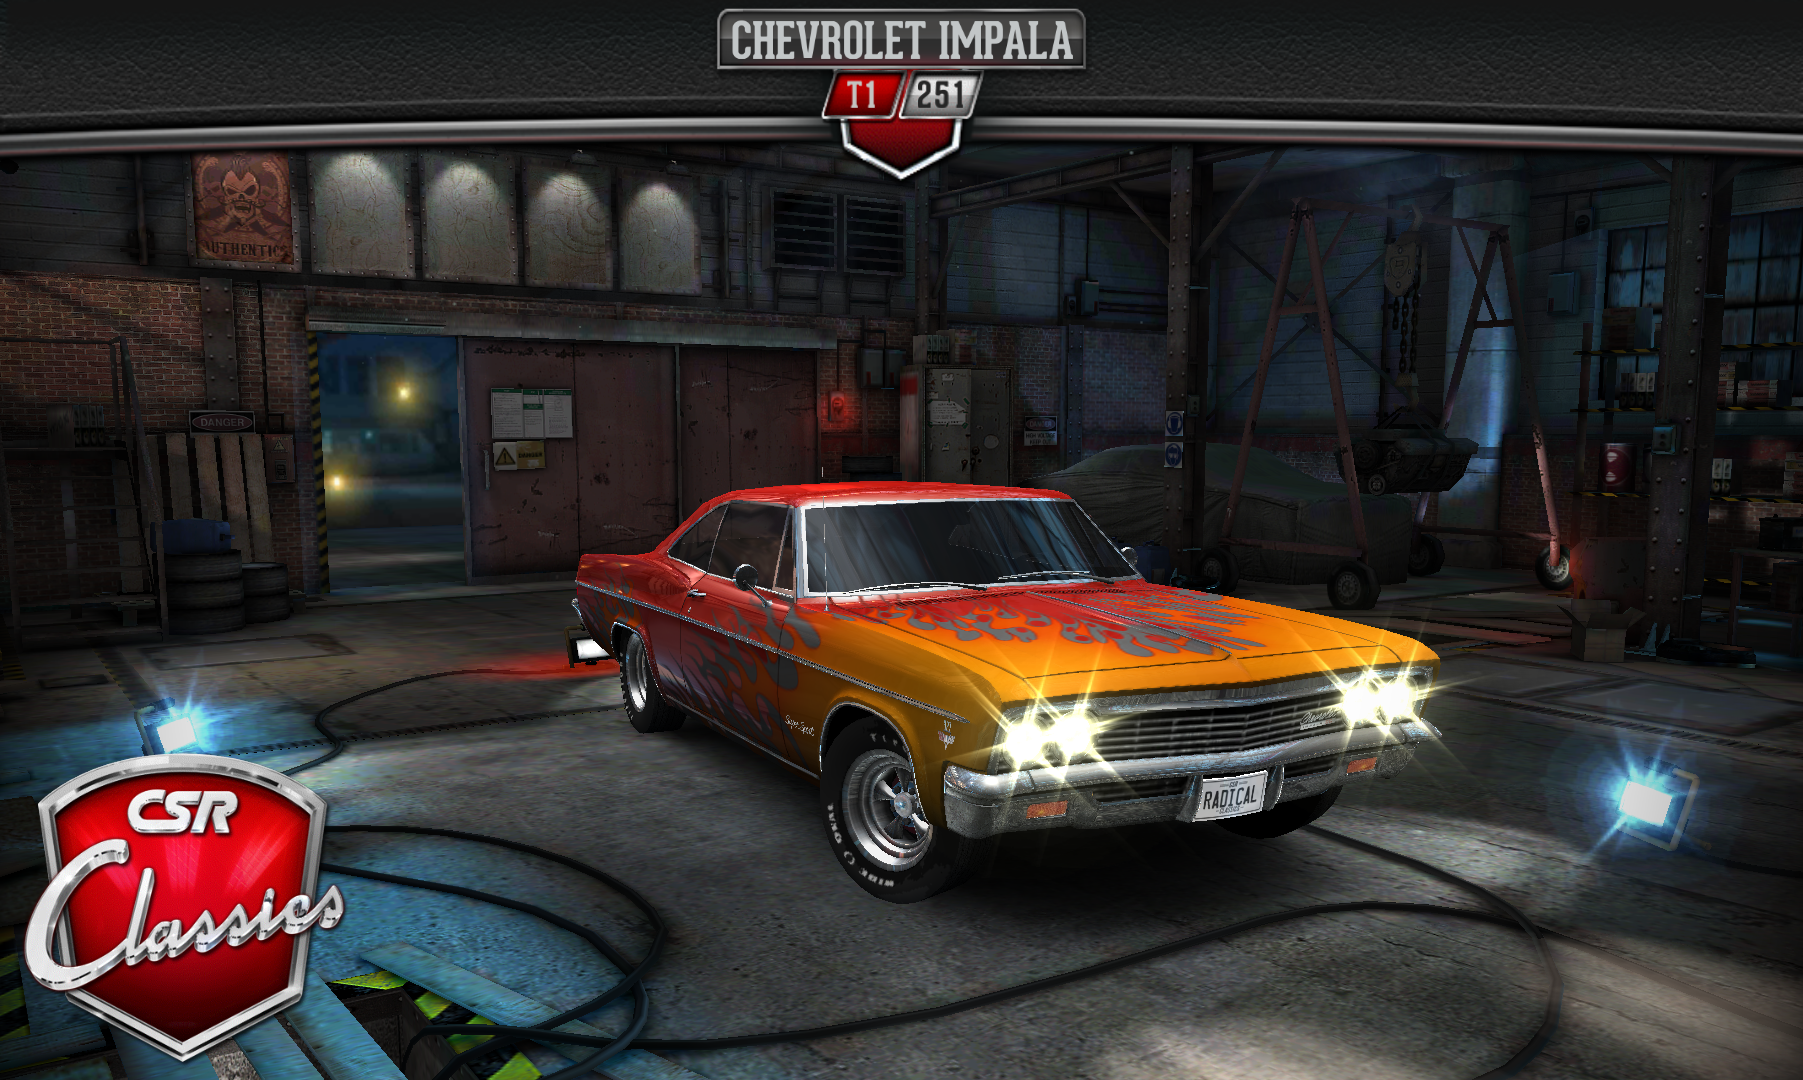 Chevrolet Impala Csr Classics Wiki Fandom Powered By Wikia